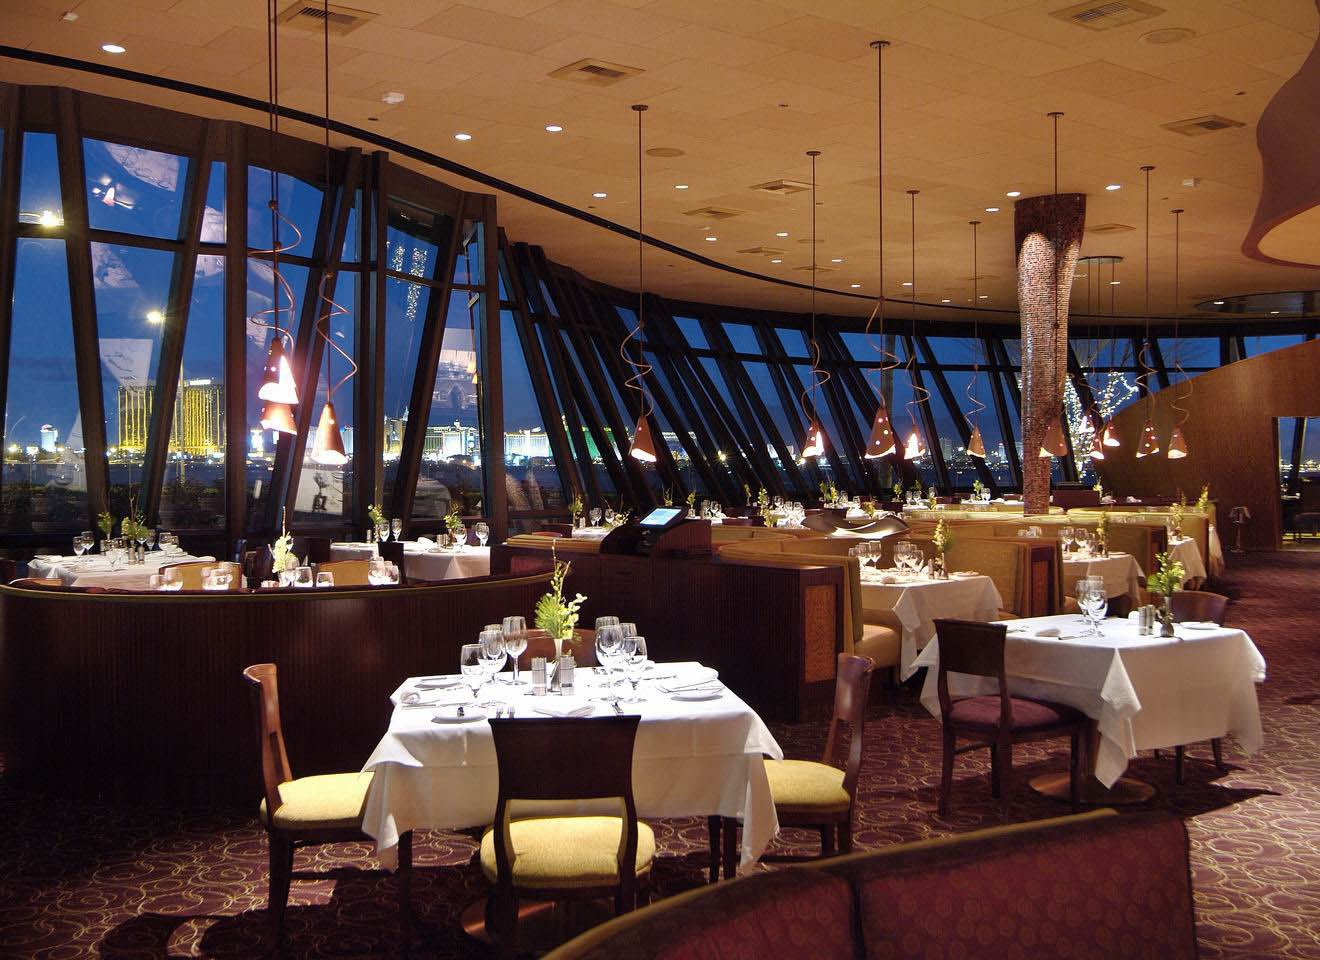 The Restaurants With The Best Views In Las Vegas